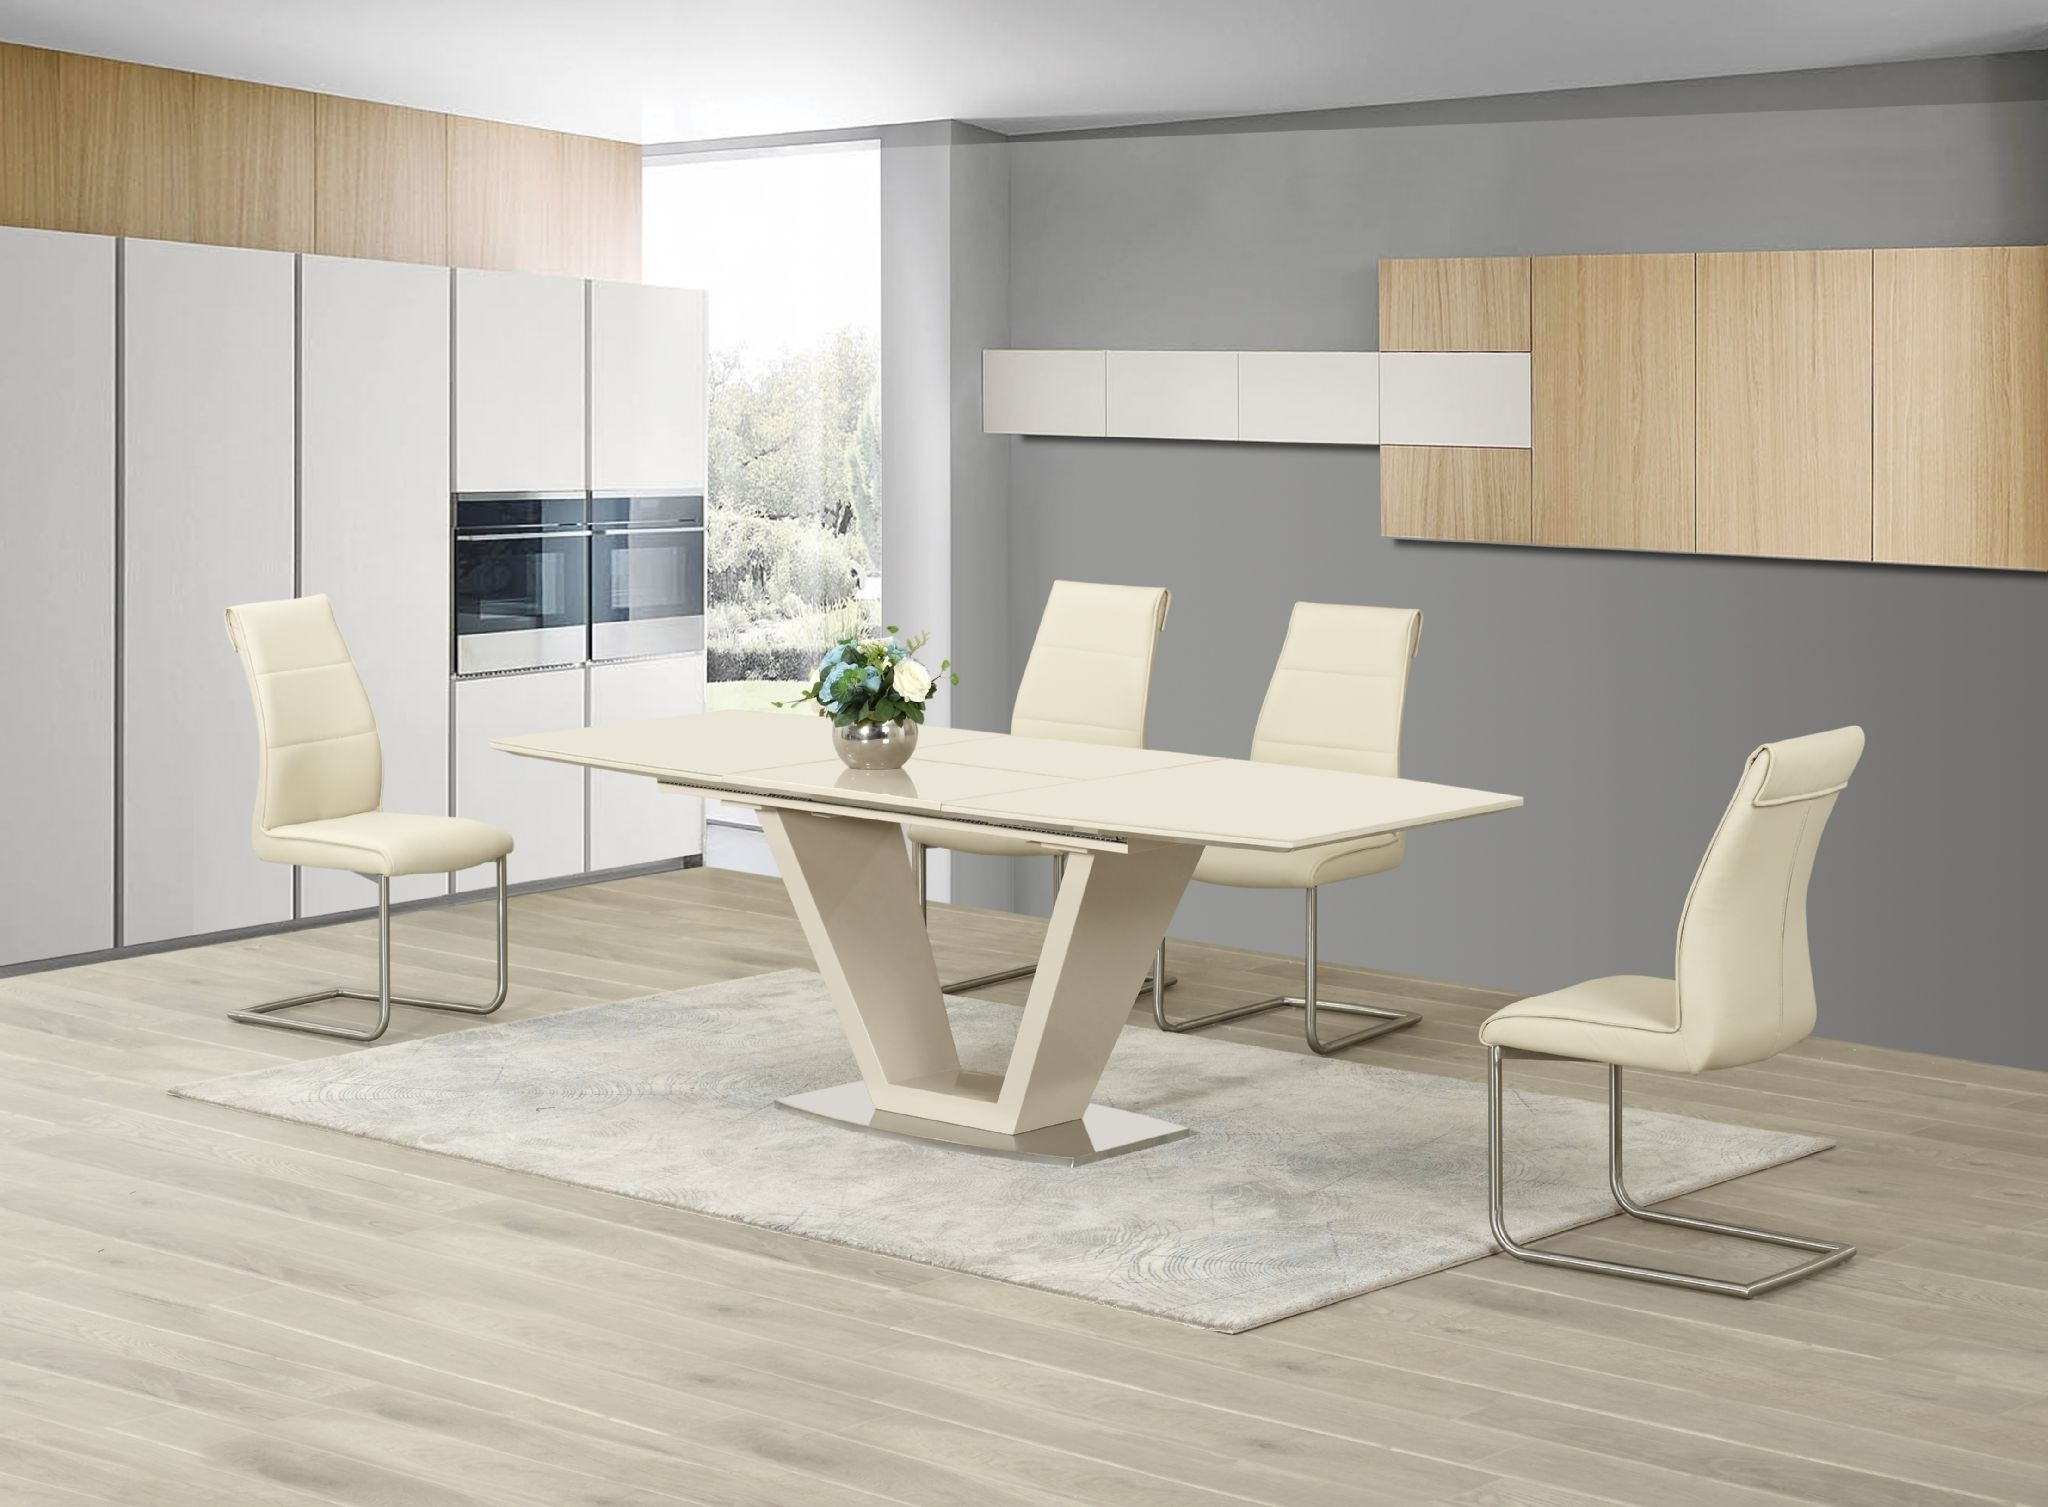 Ga Loriga Cream Gloss Glass Designer Dining Table Extending 160 220 With Regard To Well Known Gloss White Dining Tables And Chairs (View 7 of 25)